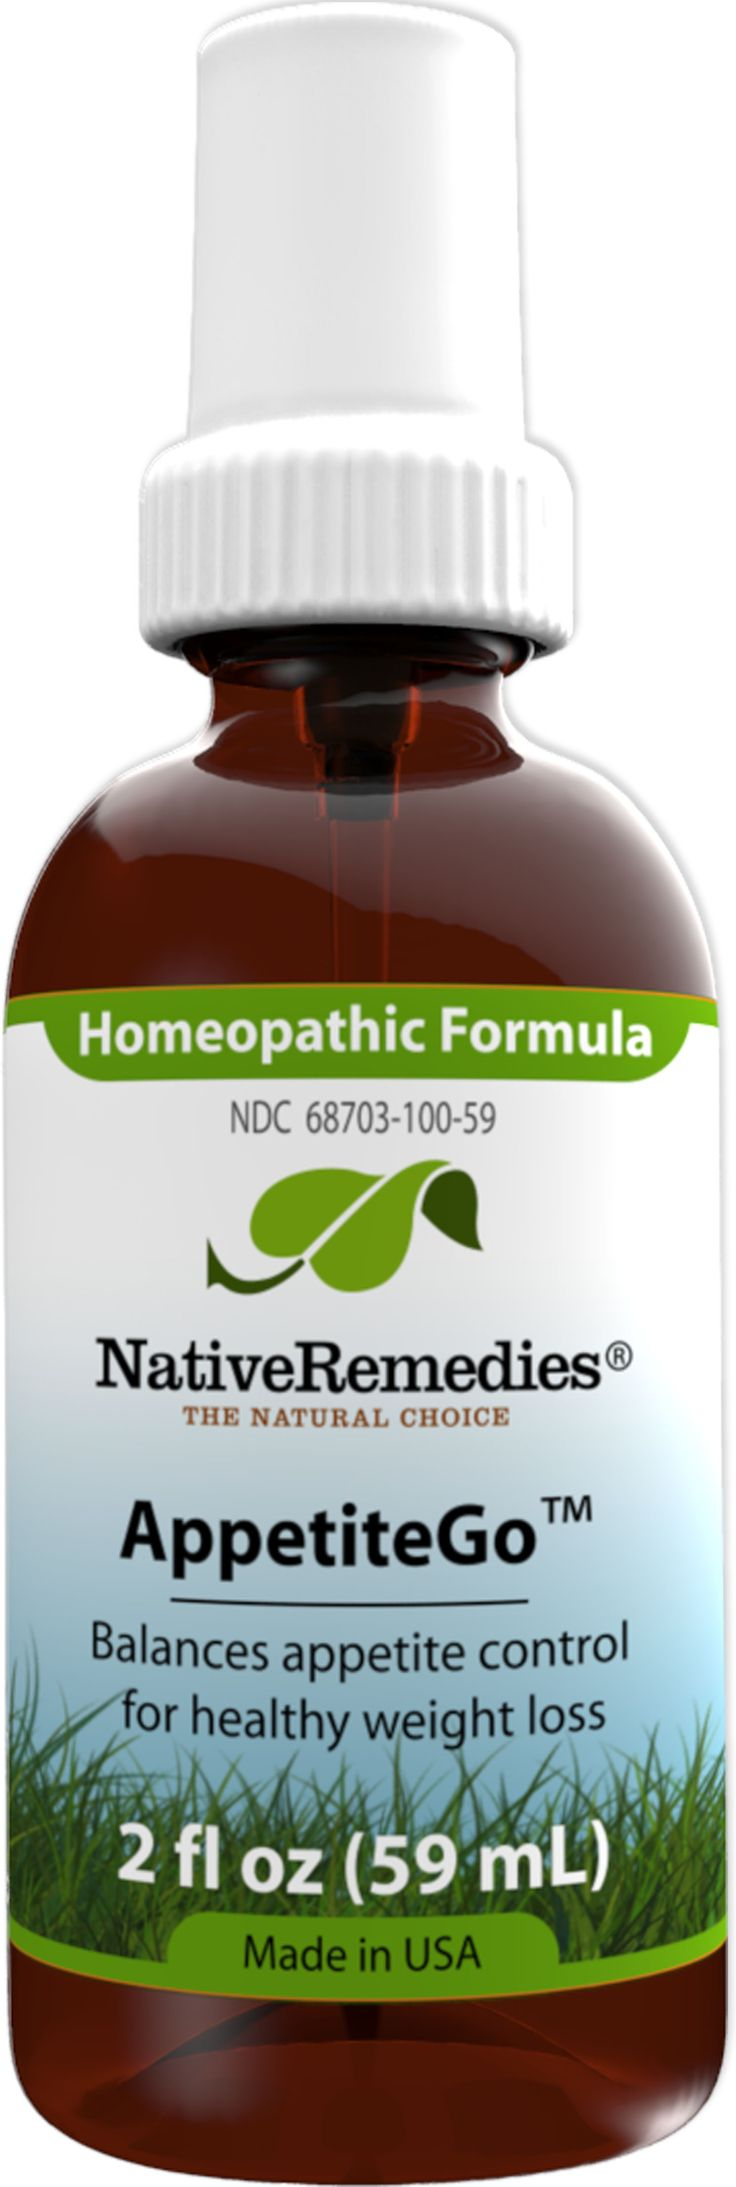 AppetiteGo™ - Homeopathic Natural remedy temporarily relieves feelings of hunger appetite suppressant to help with healthy weight loss